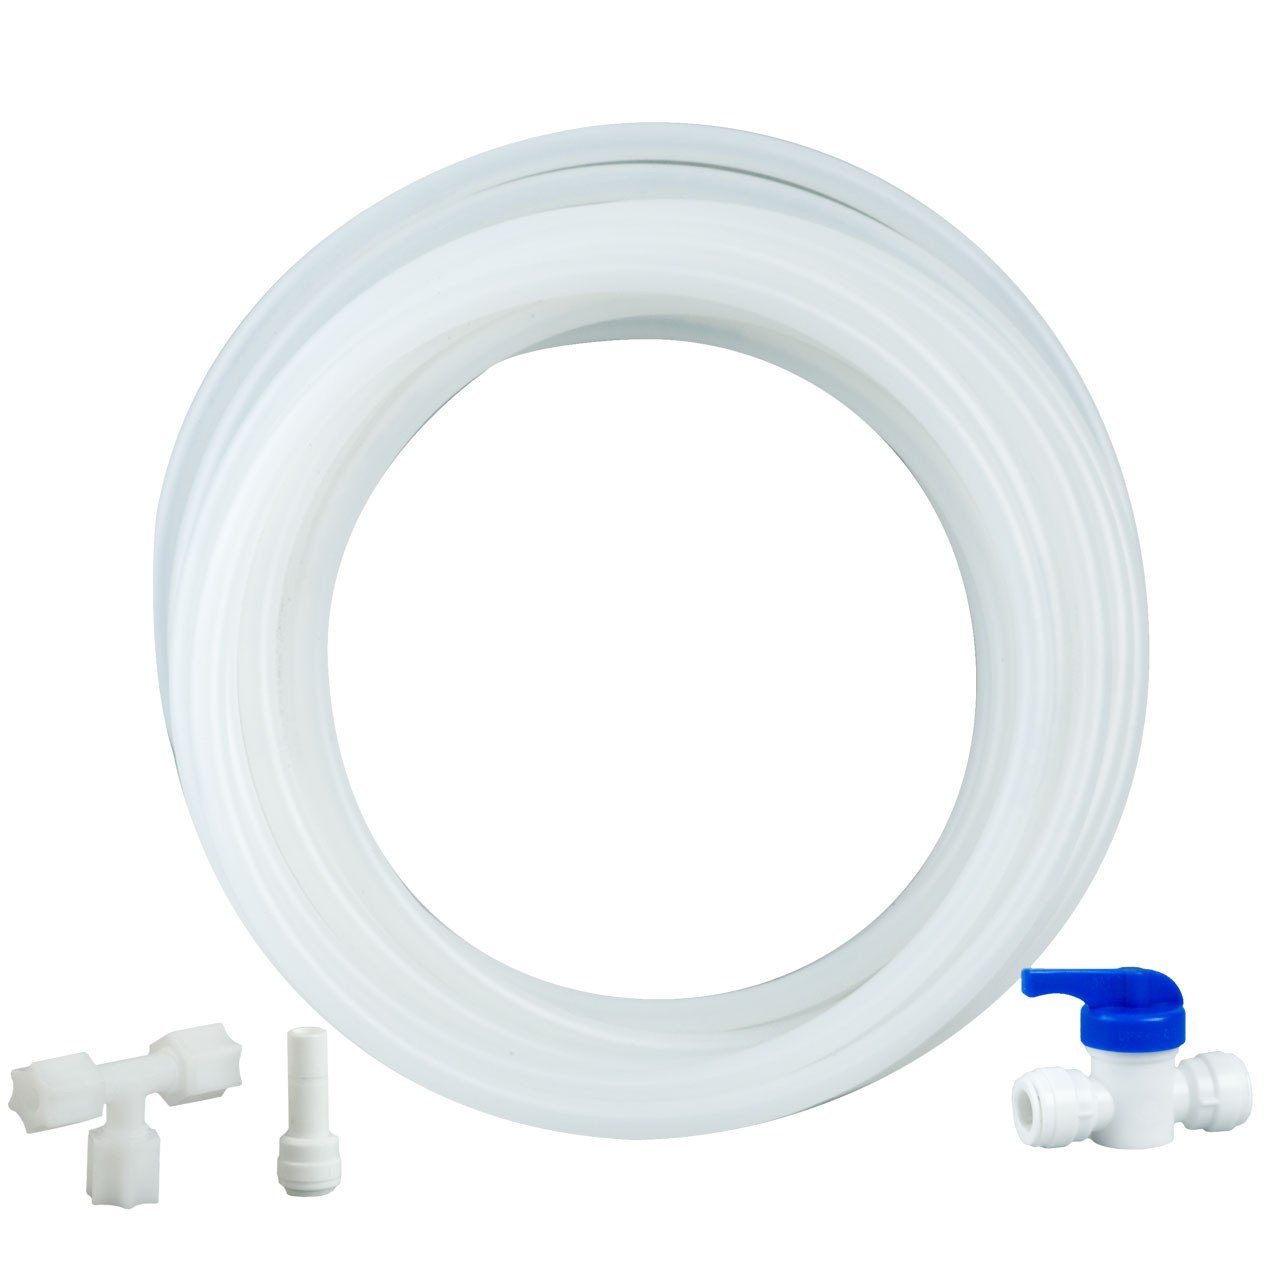 500010 - Ice Maker Kit with 3/8 connections, by Watts Premier